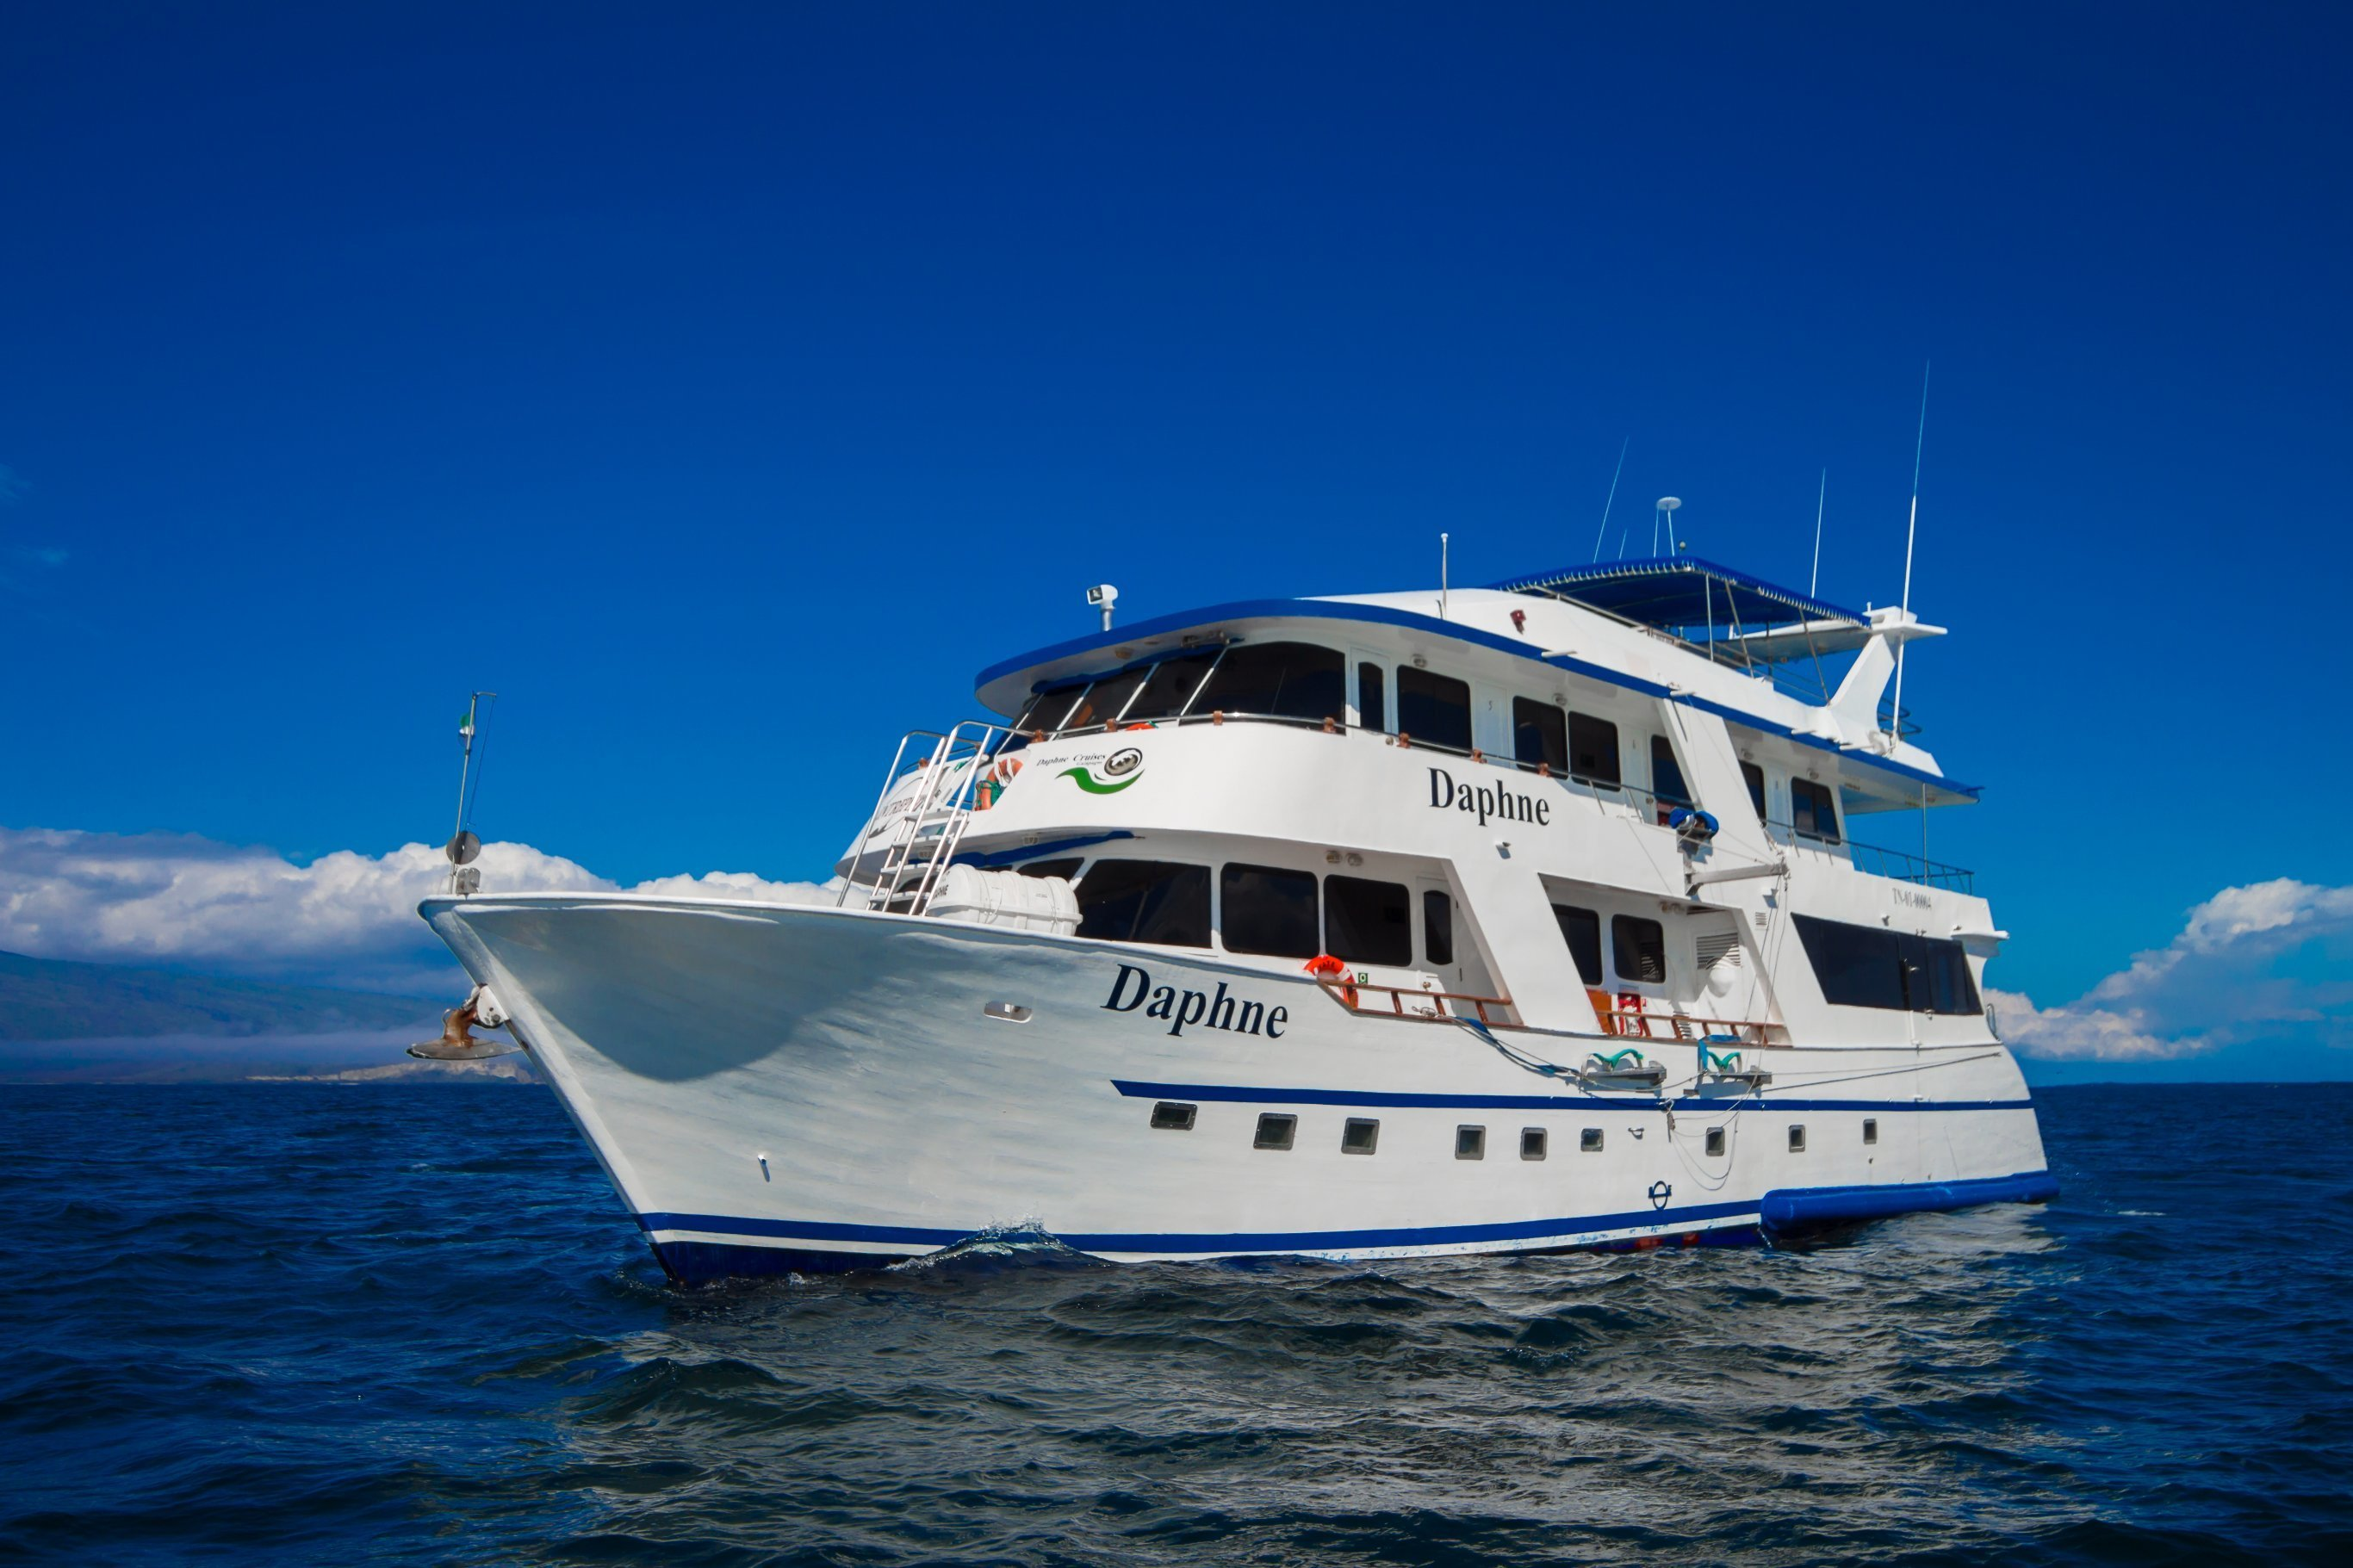 4-Day Galapagos Cruise Southern Islands - Ecuador Itinerary